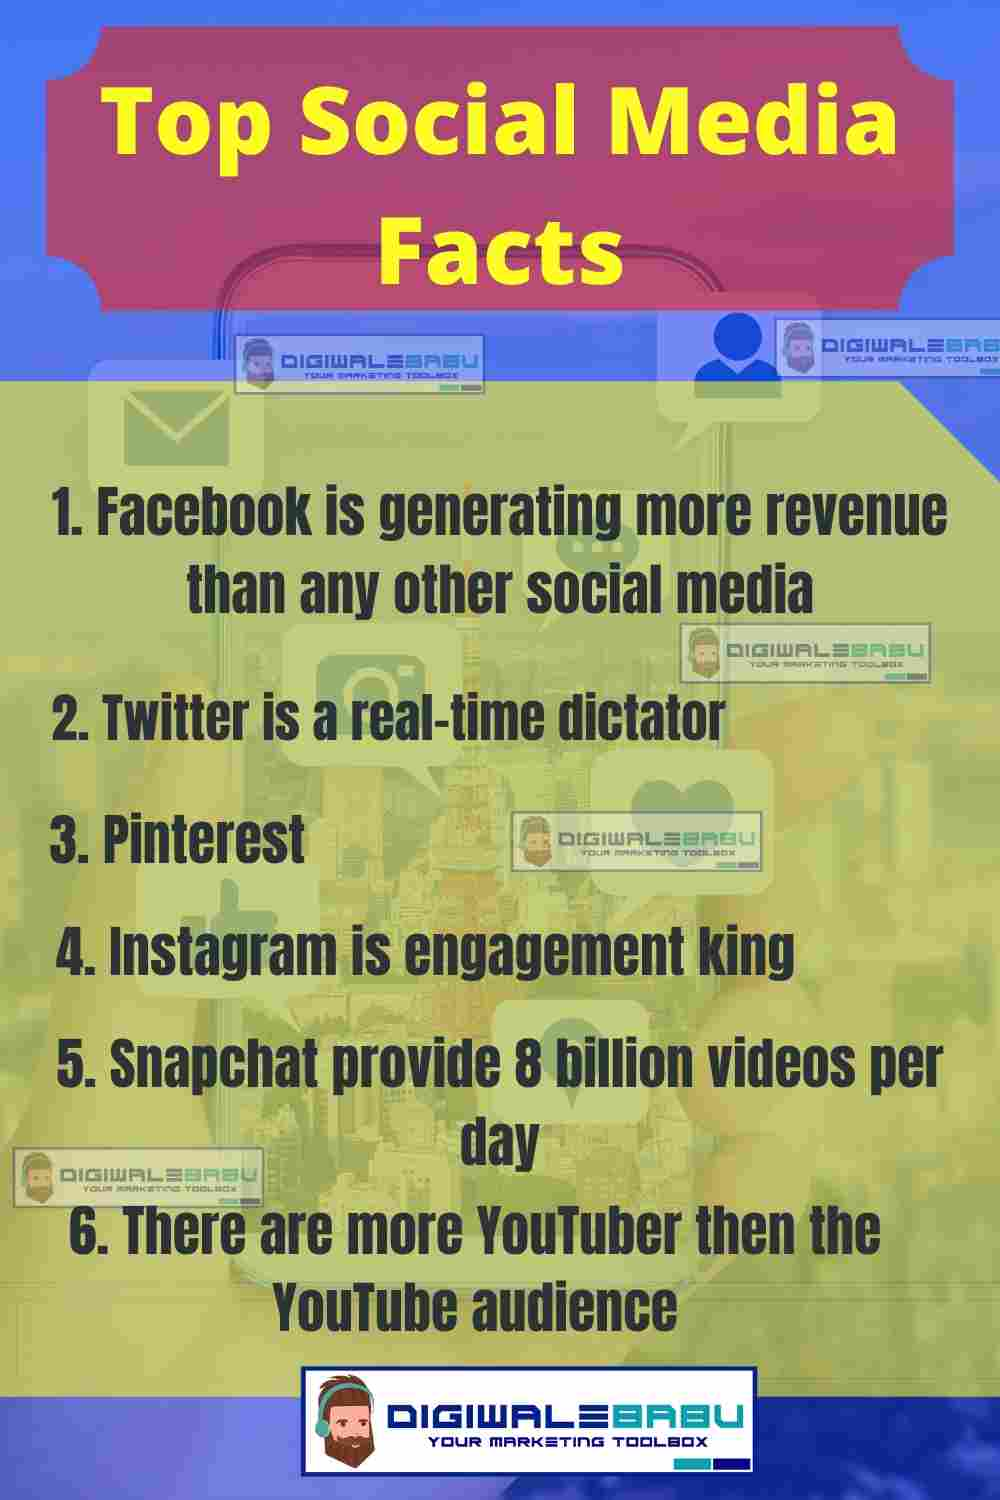 Top Social Media Facts